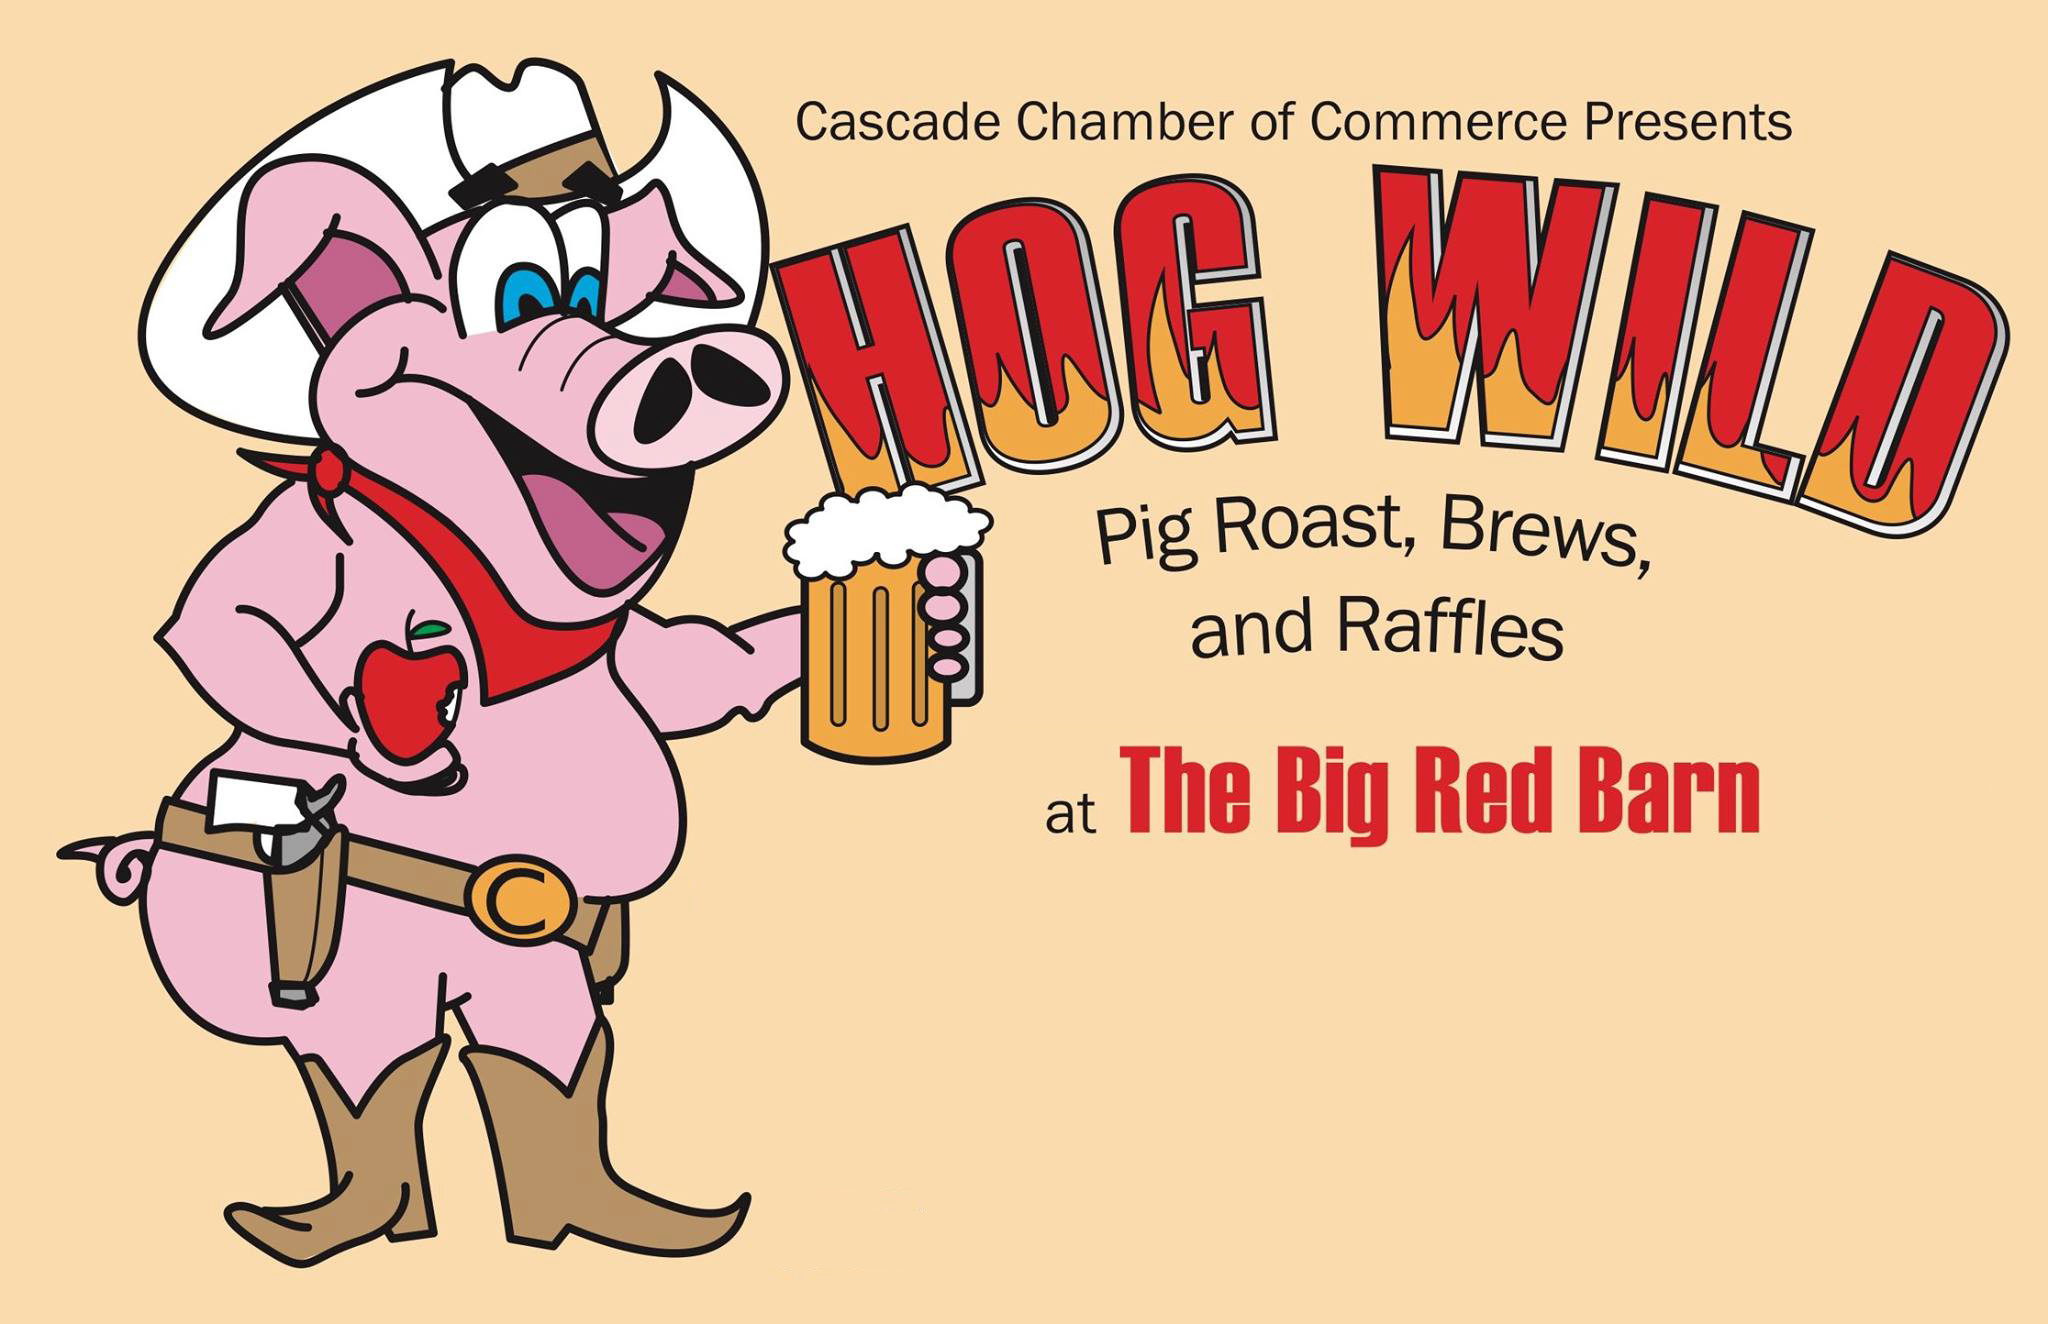 Clipart funny two hogs going hog wild jpg download Hog Wild - Cascade Chamber of Commerce jpg download